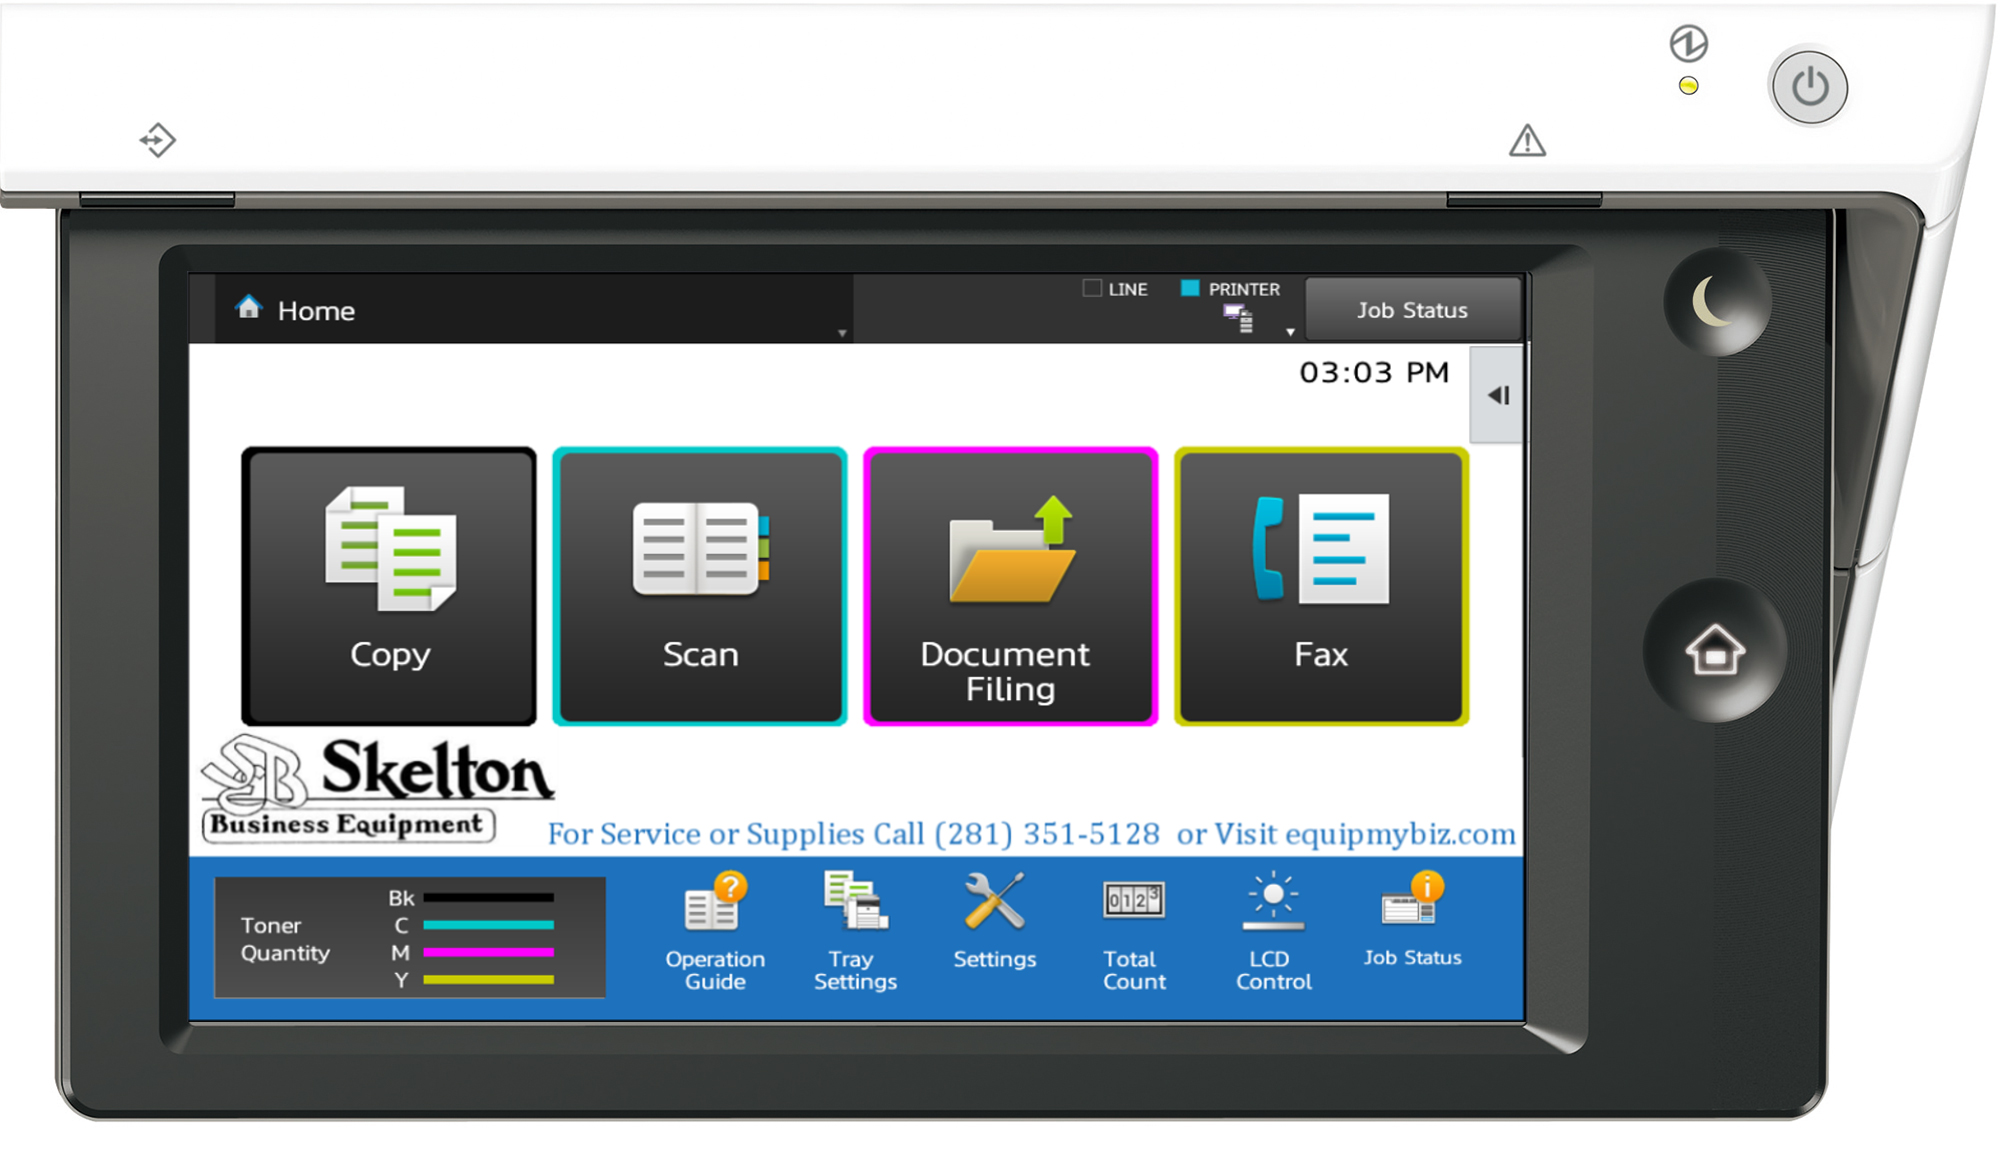 Skelton Sharp Copier Touch Screen | Copier Sales and Leasing